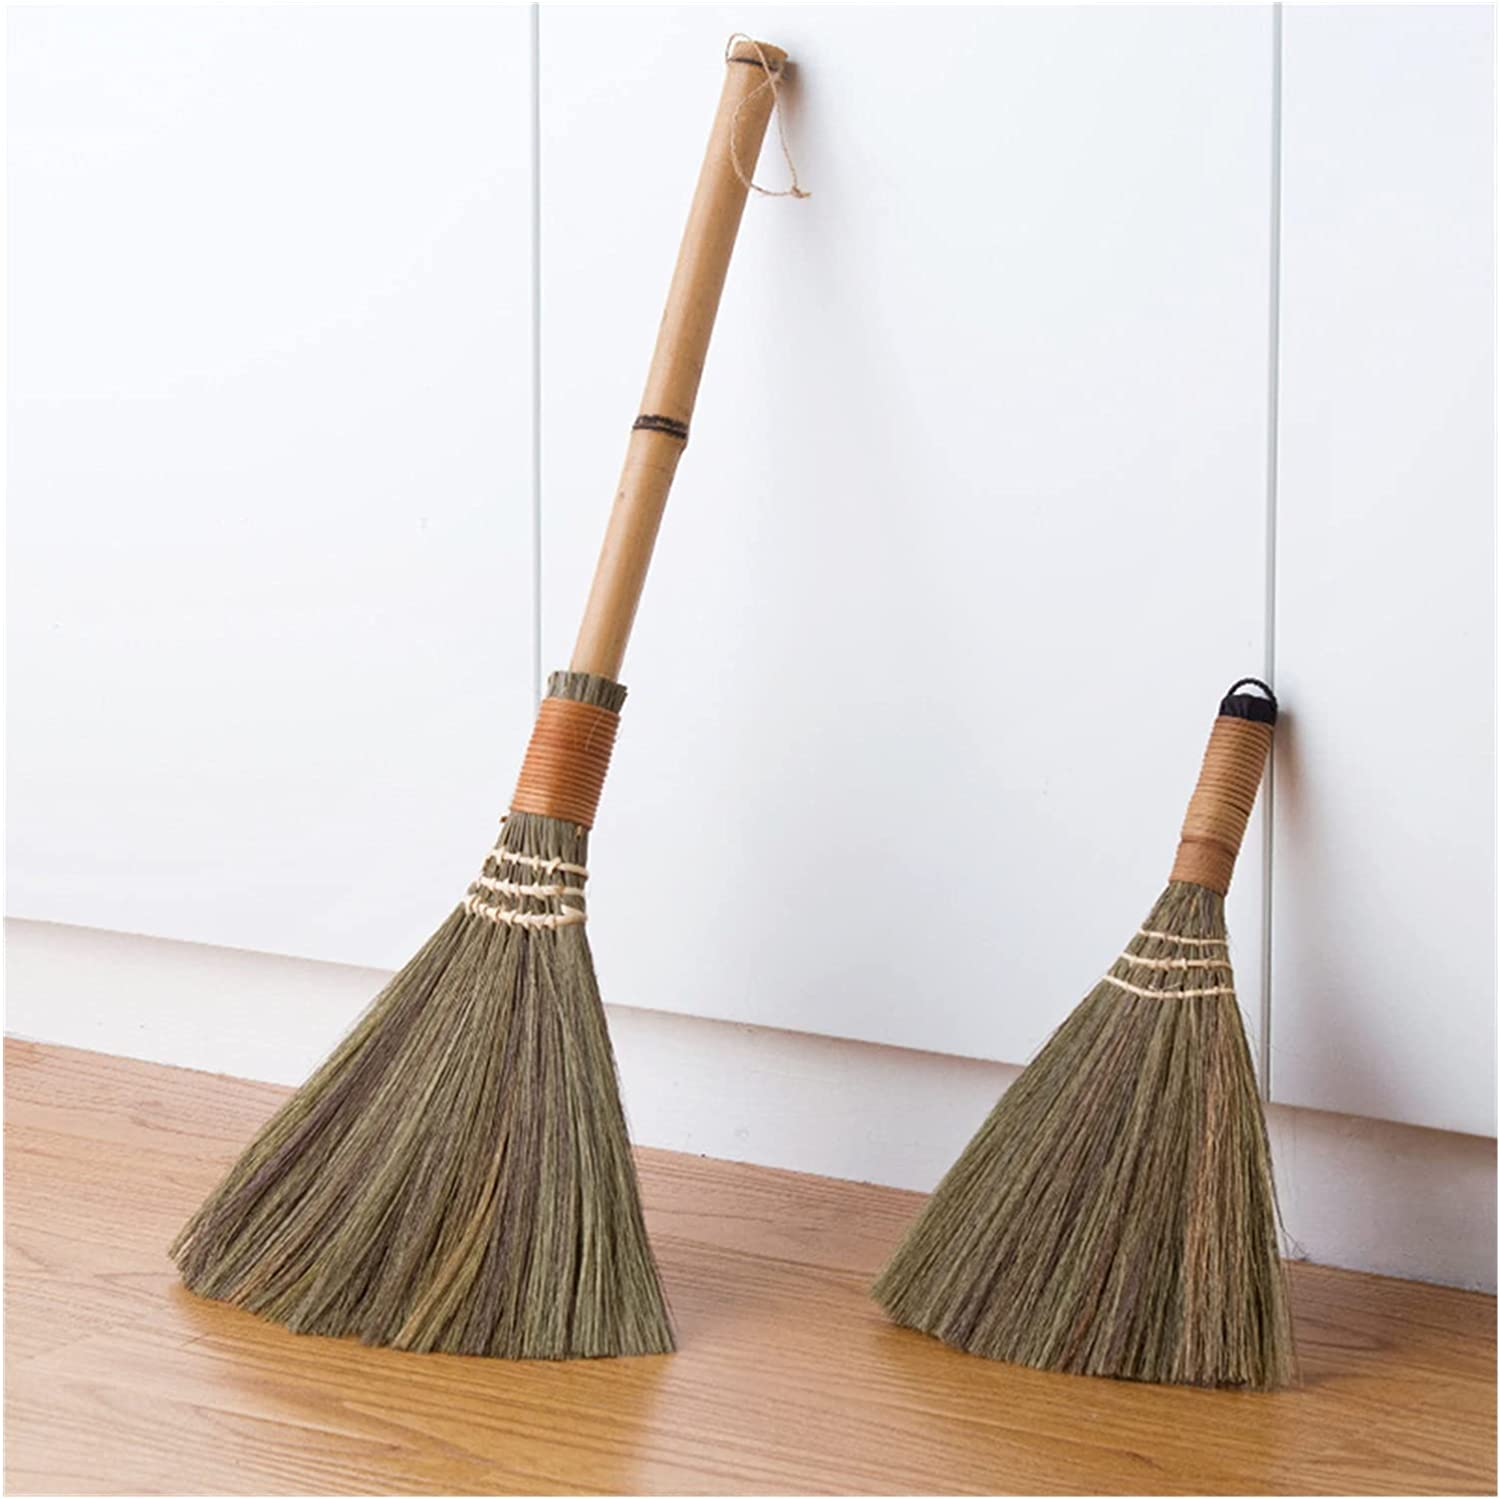 JUSTYUSHU Broom Wooden supreme FloorSoft Fur Sweeping F Now free shipping Home